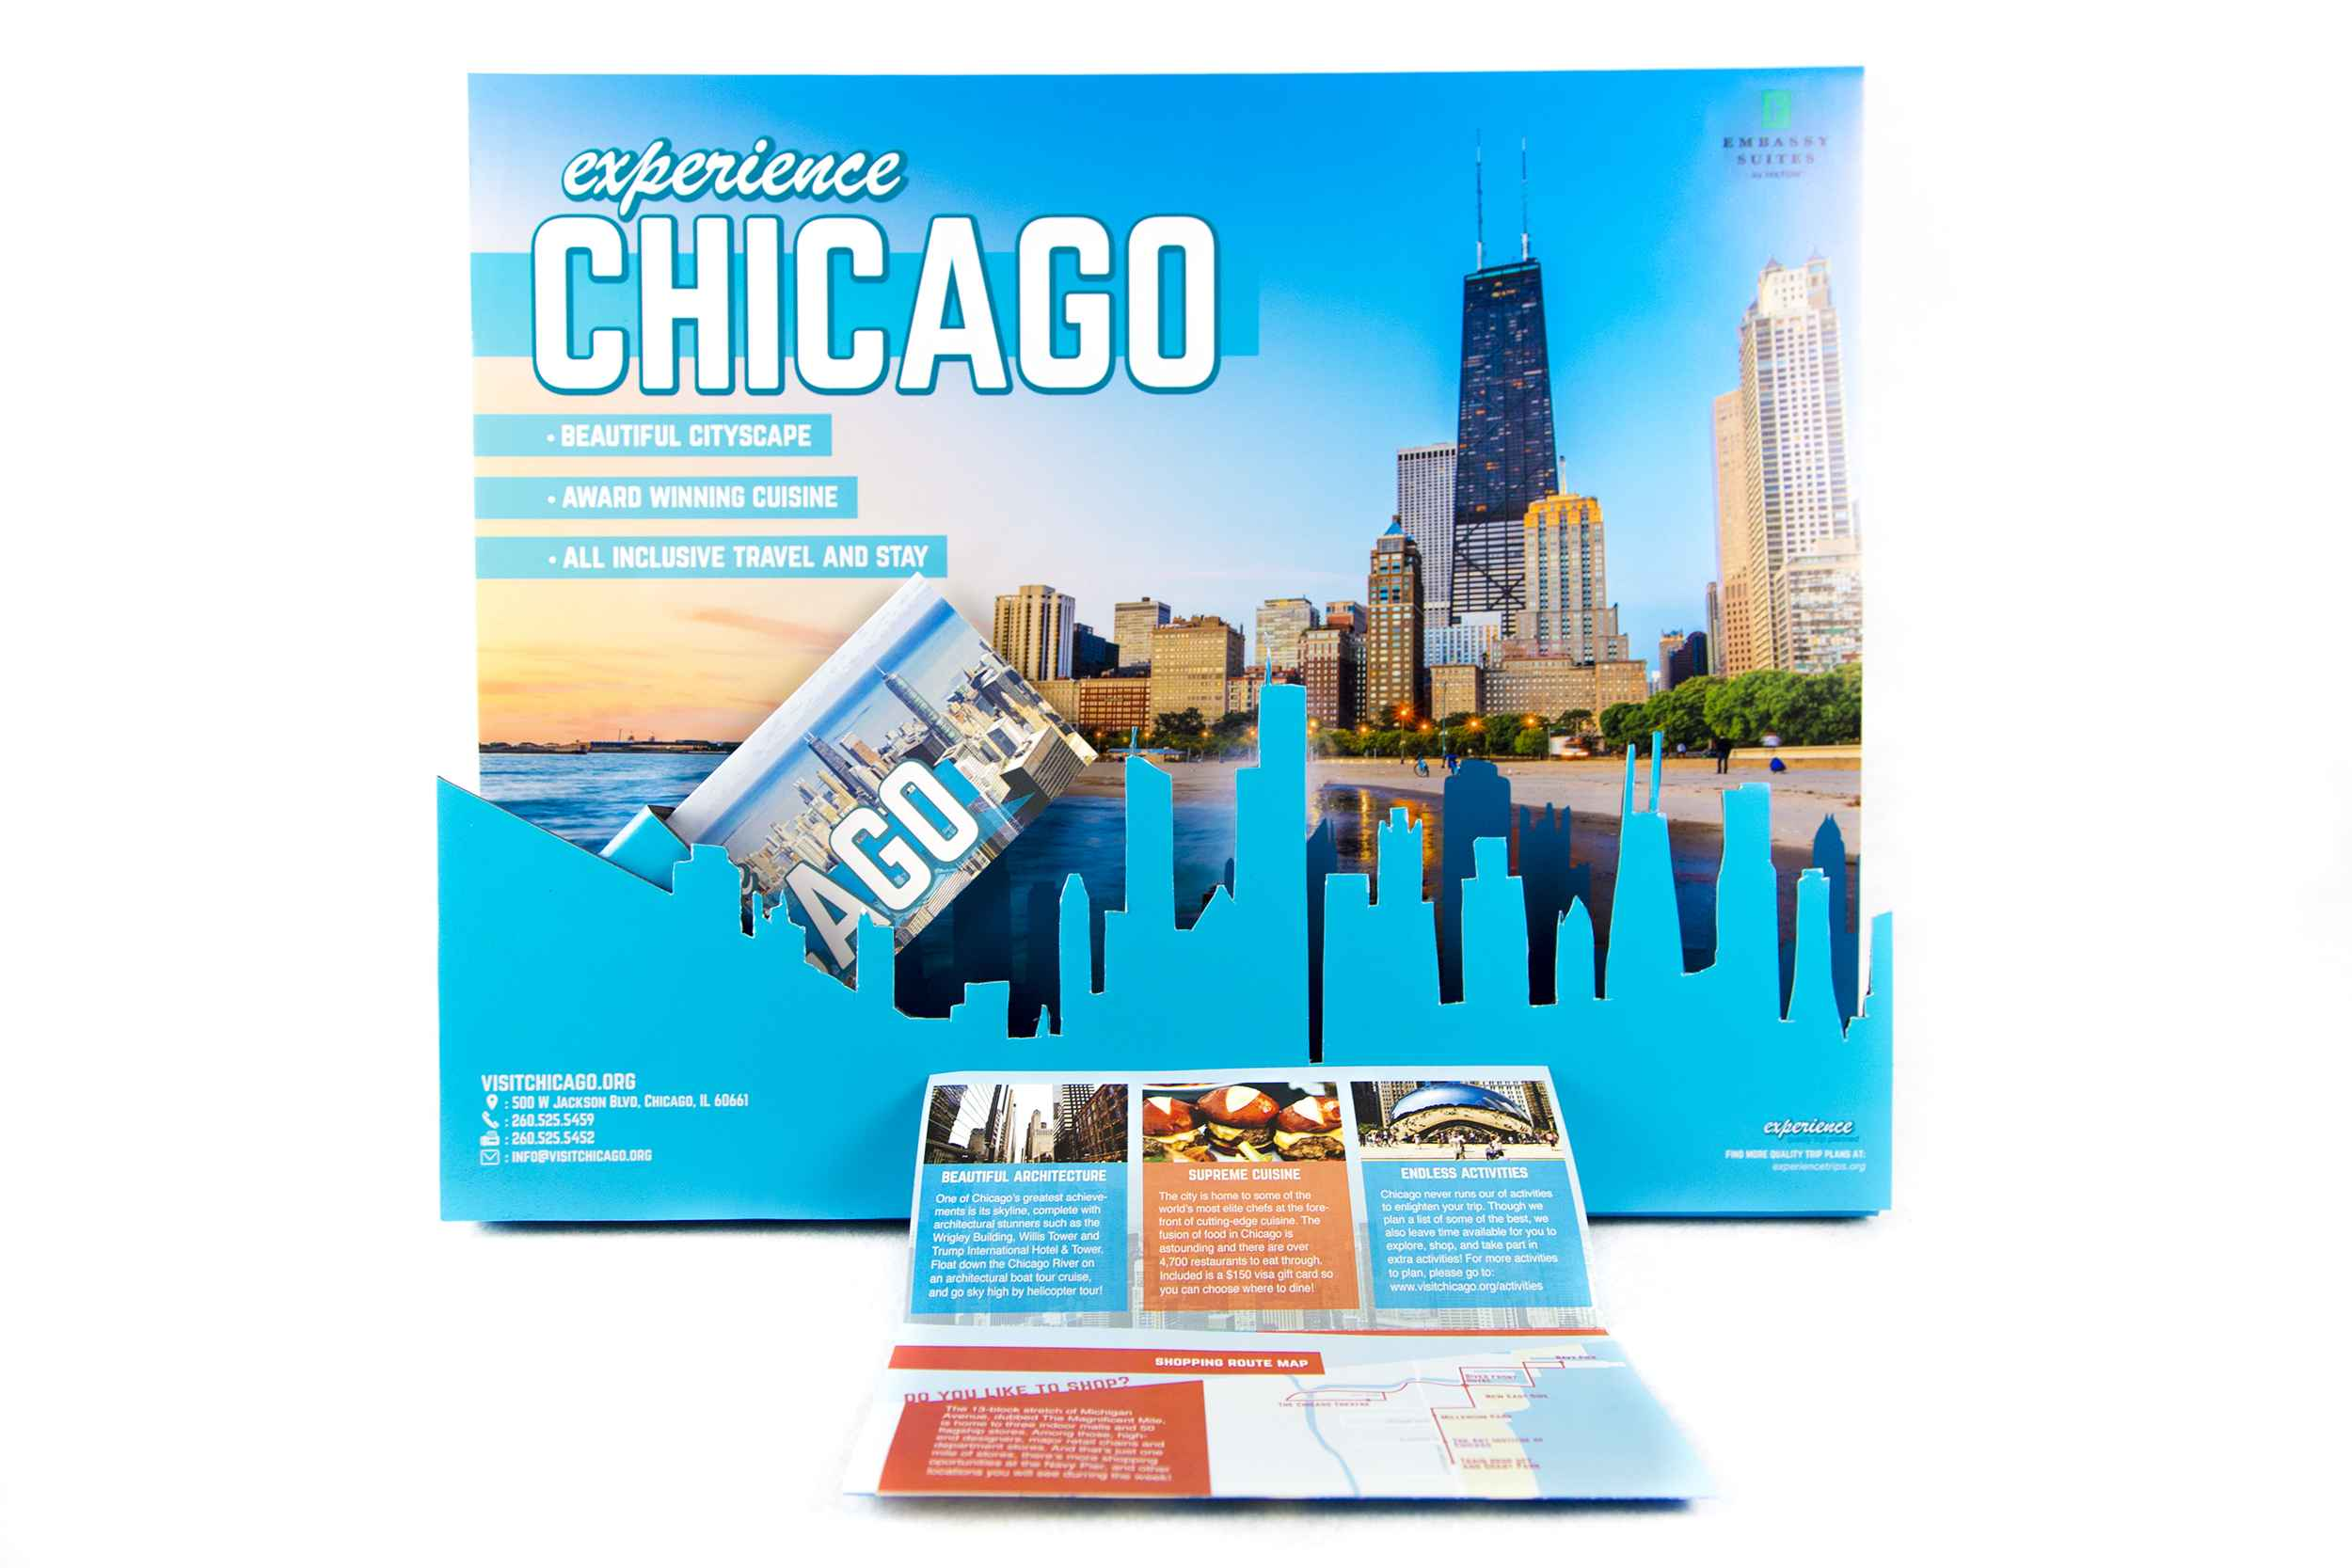 dustin-keeslar-portfolio-fort-wayne-indiana-graphic-design-chicago-travel-brochure7